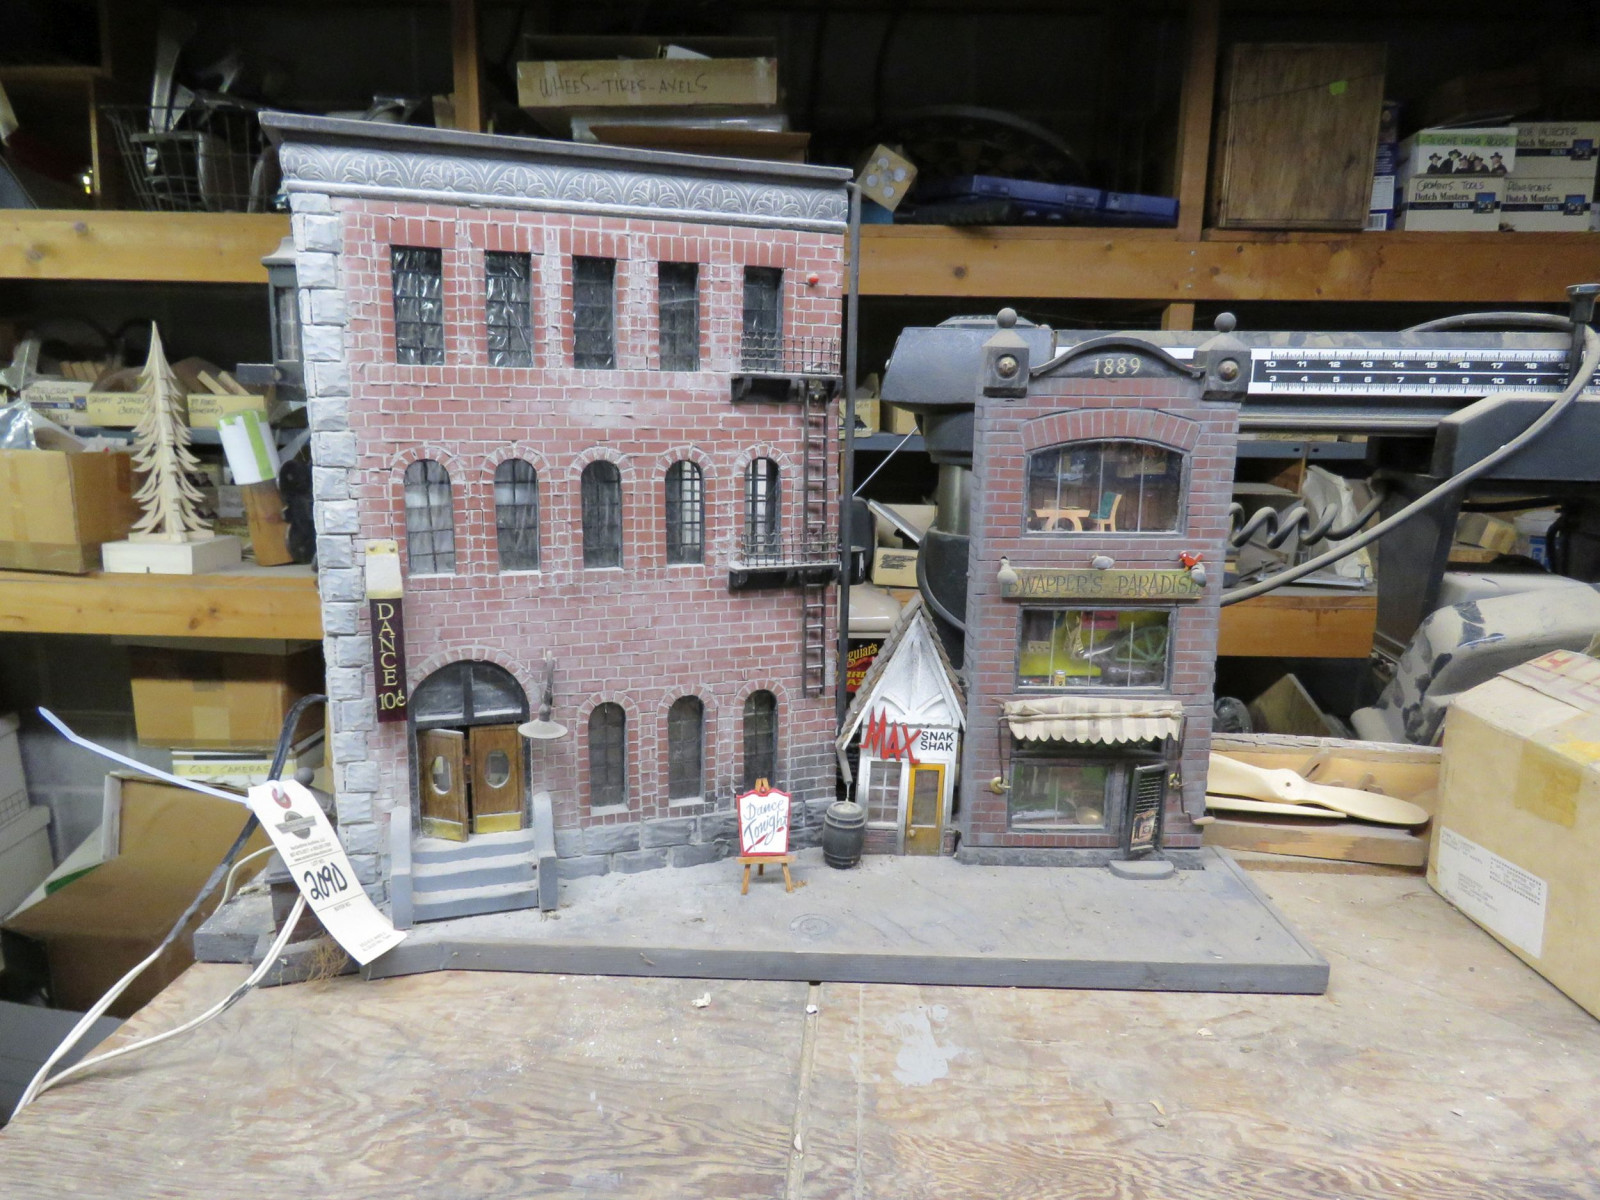 Street Scene Diorama with Vintage Cast Iron Toys - Image 1